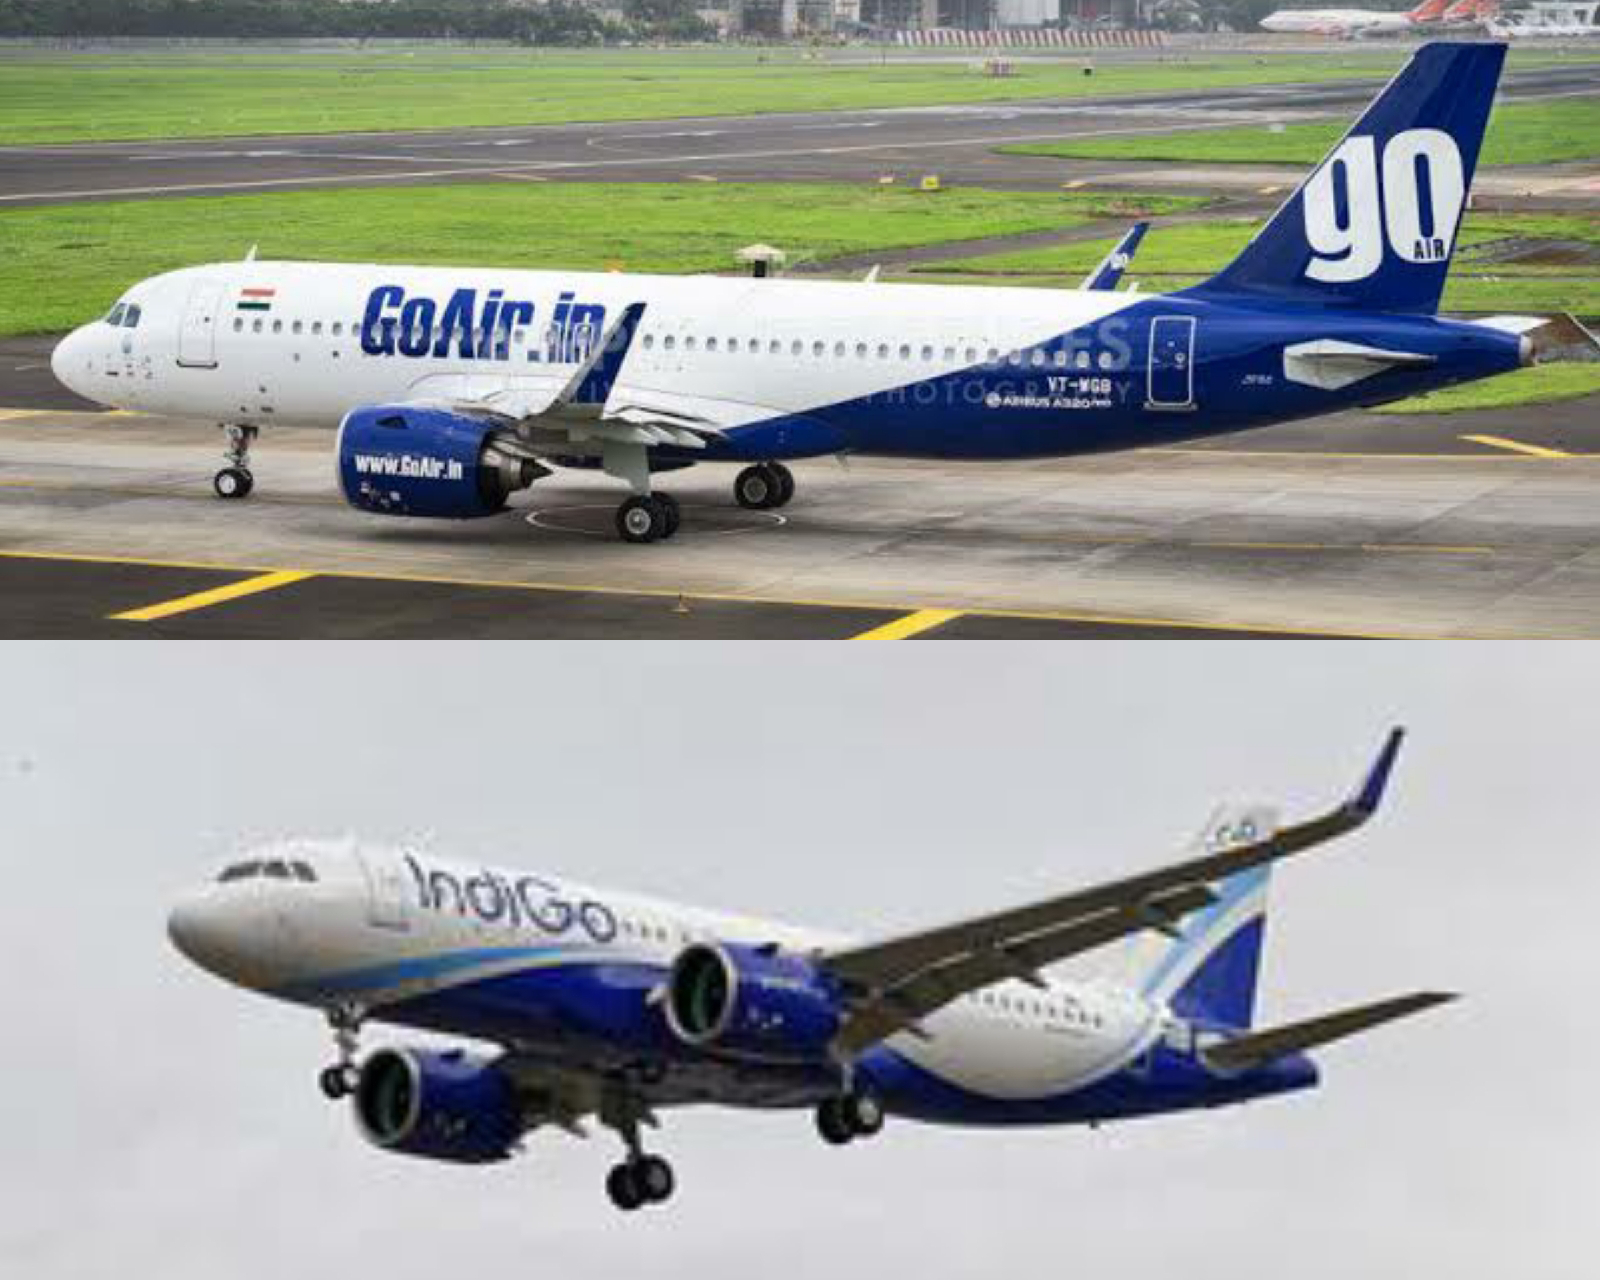 GOAIR & INDIGO FLIGHTS